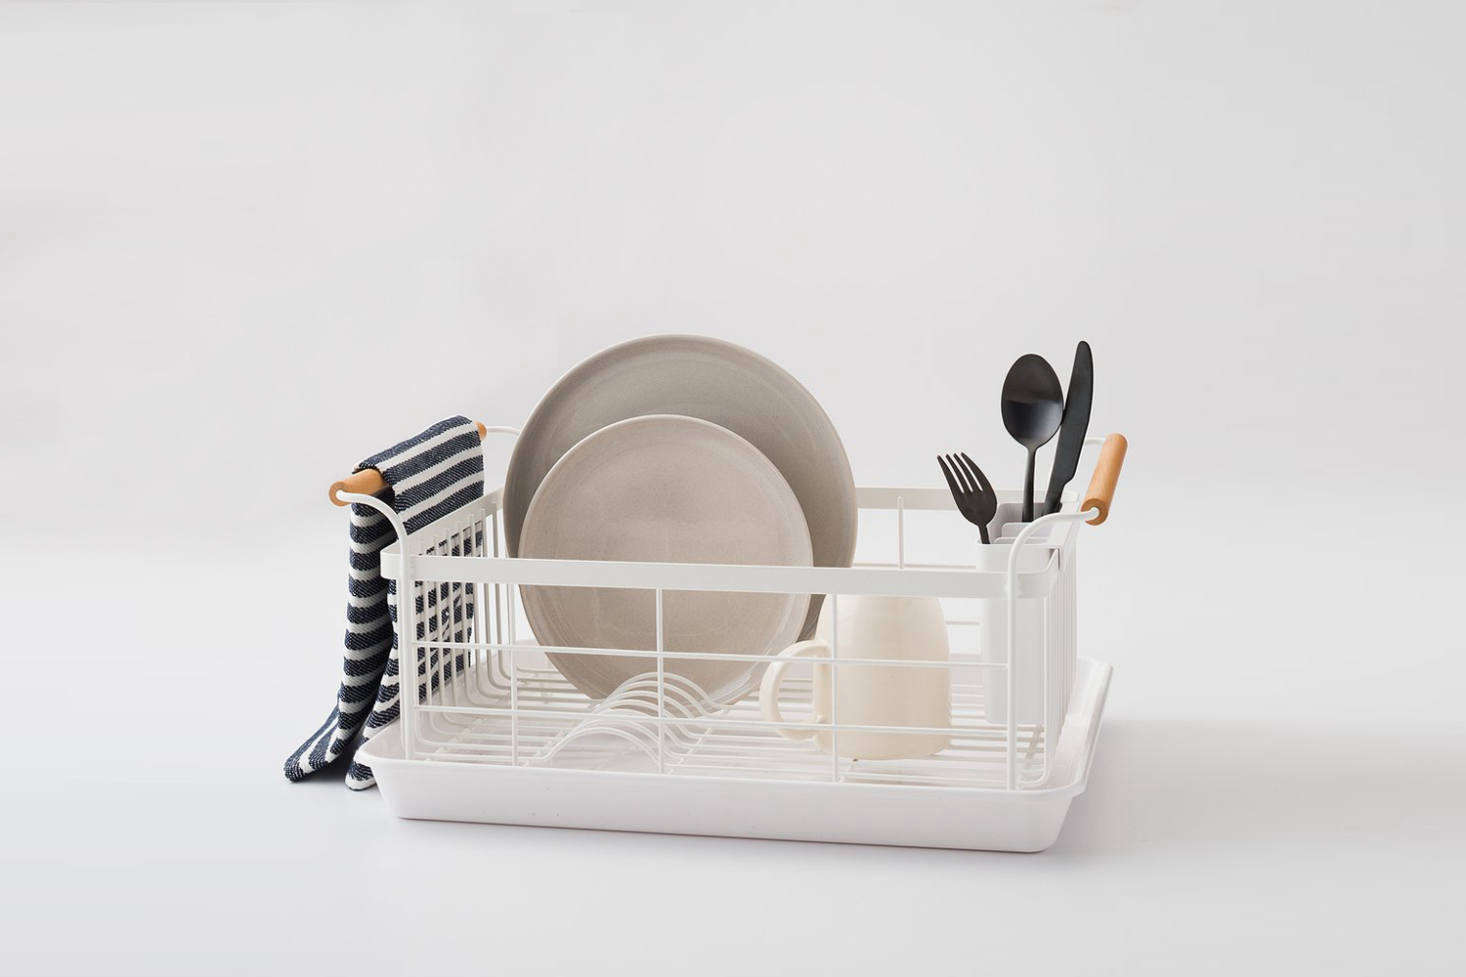 The Yamazaki Wood Handled Dish Drainer Is Made Of Powder Coated Steel And Walnut Handles